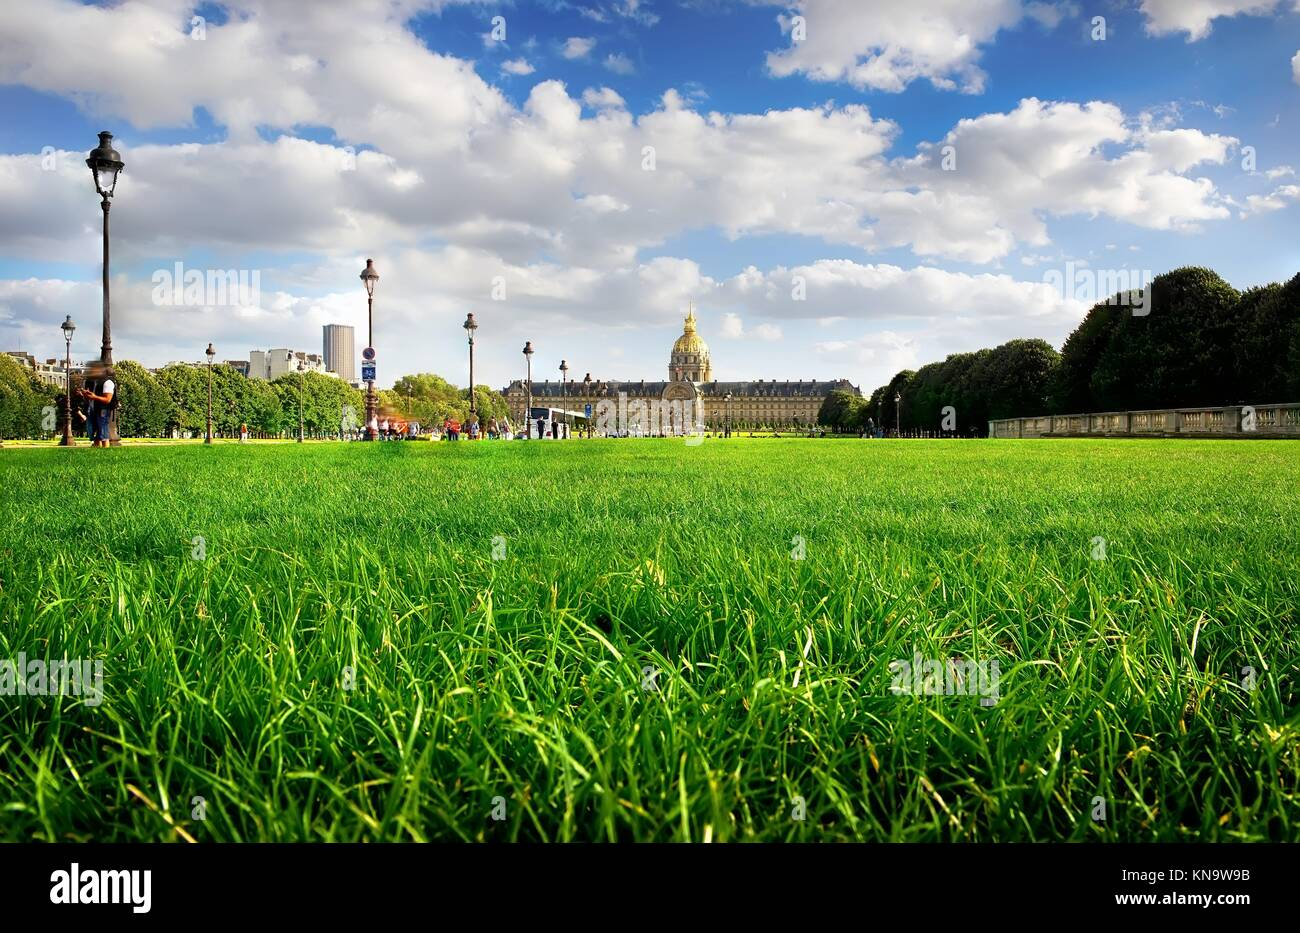 Lawn with green grass near Les Invalides in Paris, France. Stock Photo